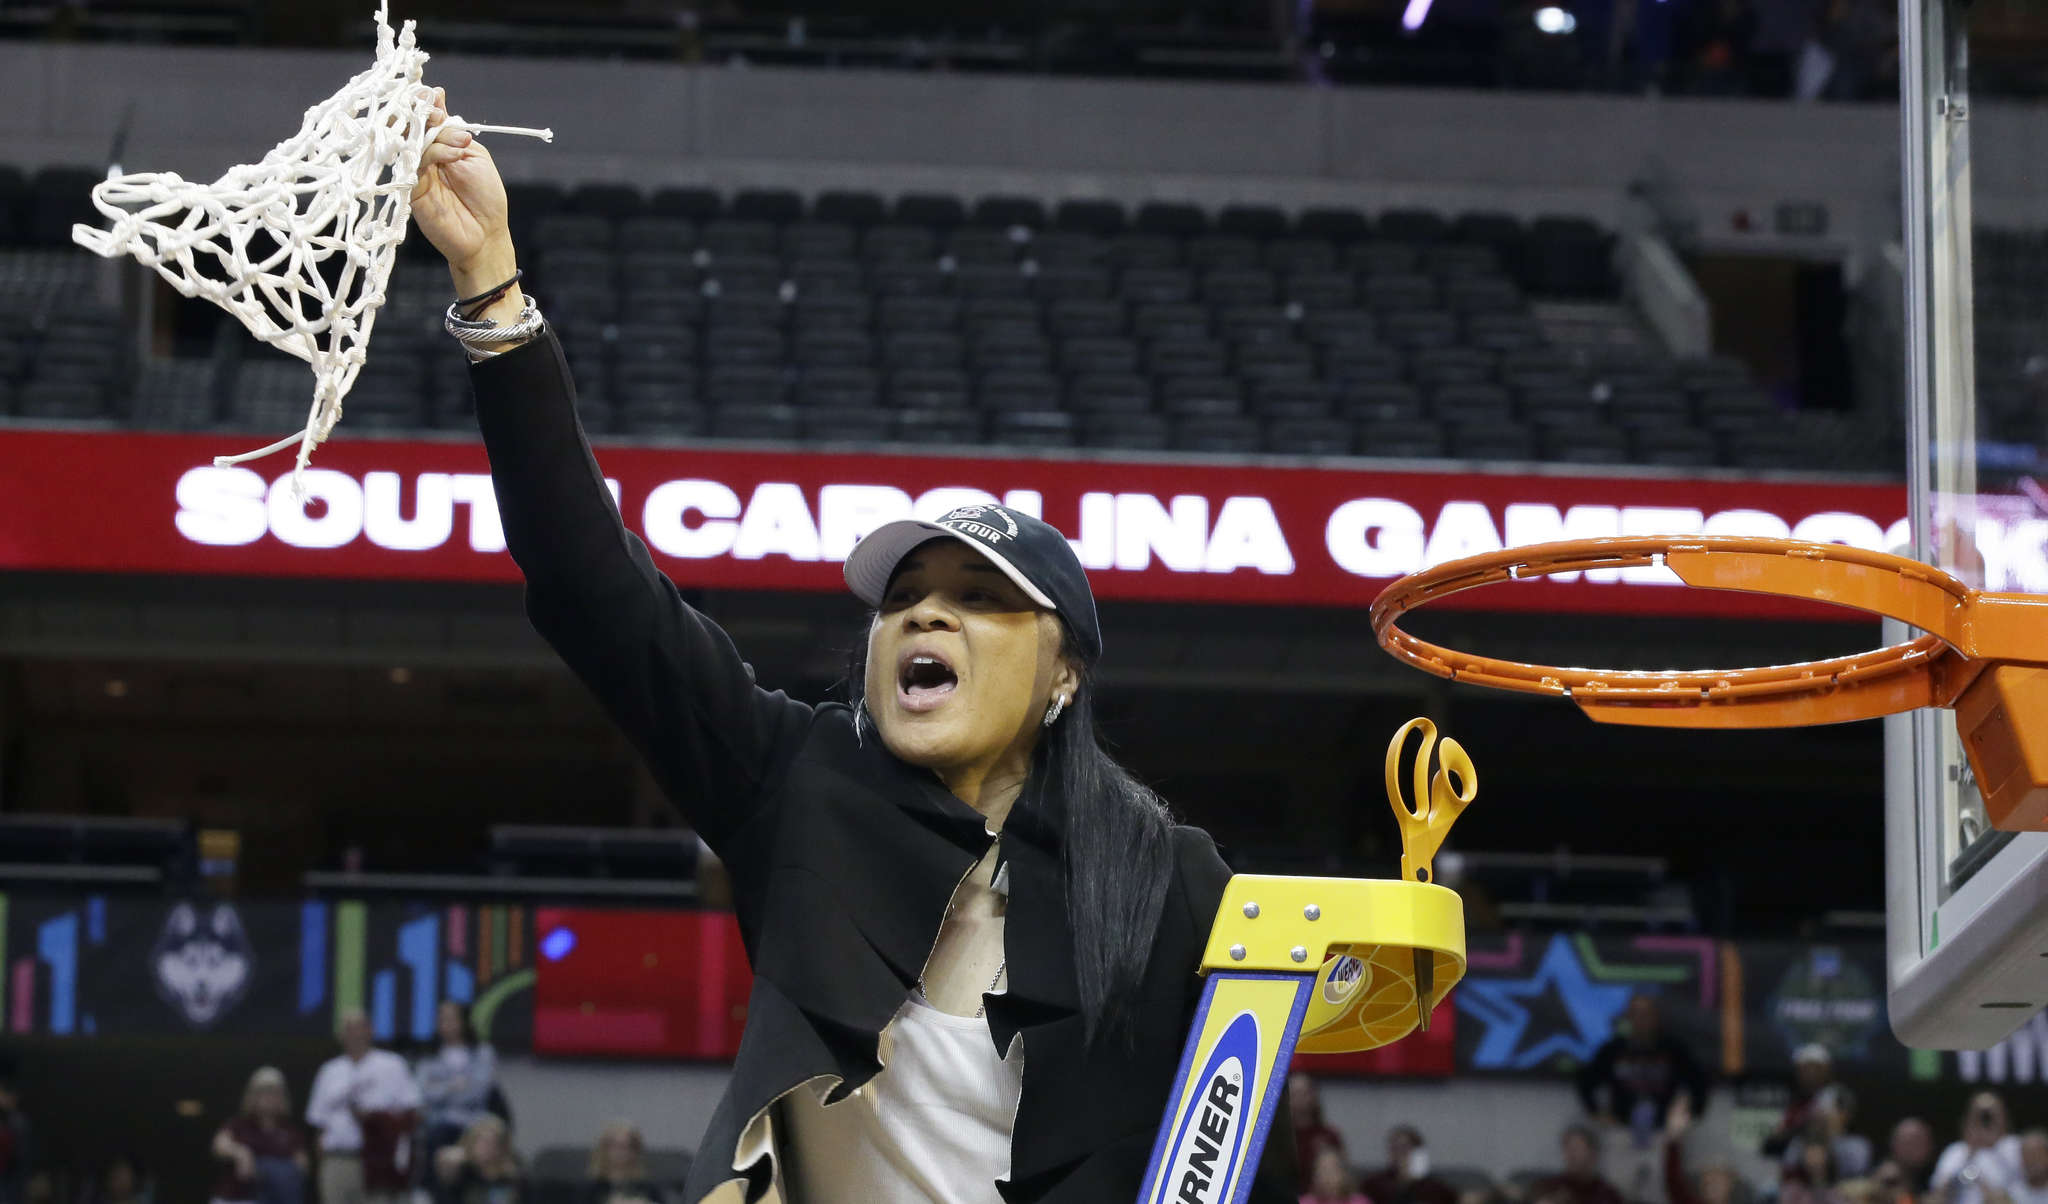 Coach Dawn Staley triumphantly holds up the net after leading the South Carolina women´s basketball team to the NCAA championship. It´s the latest achievement of a decorated career for the North Philadelphia native.